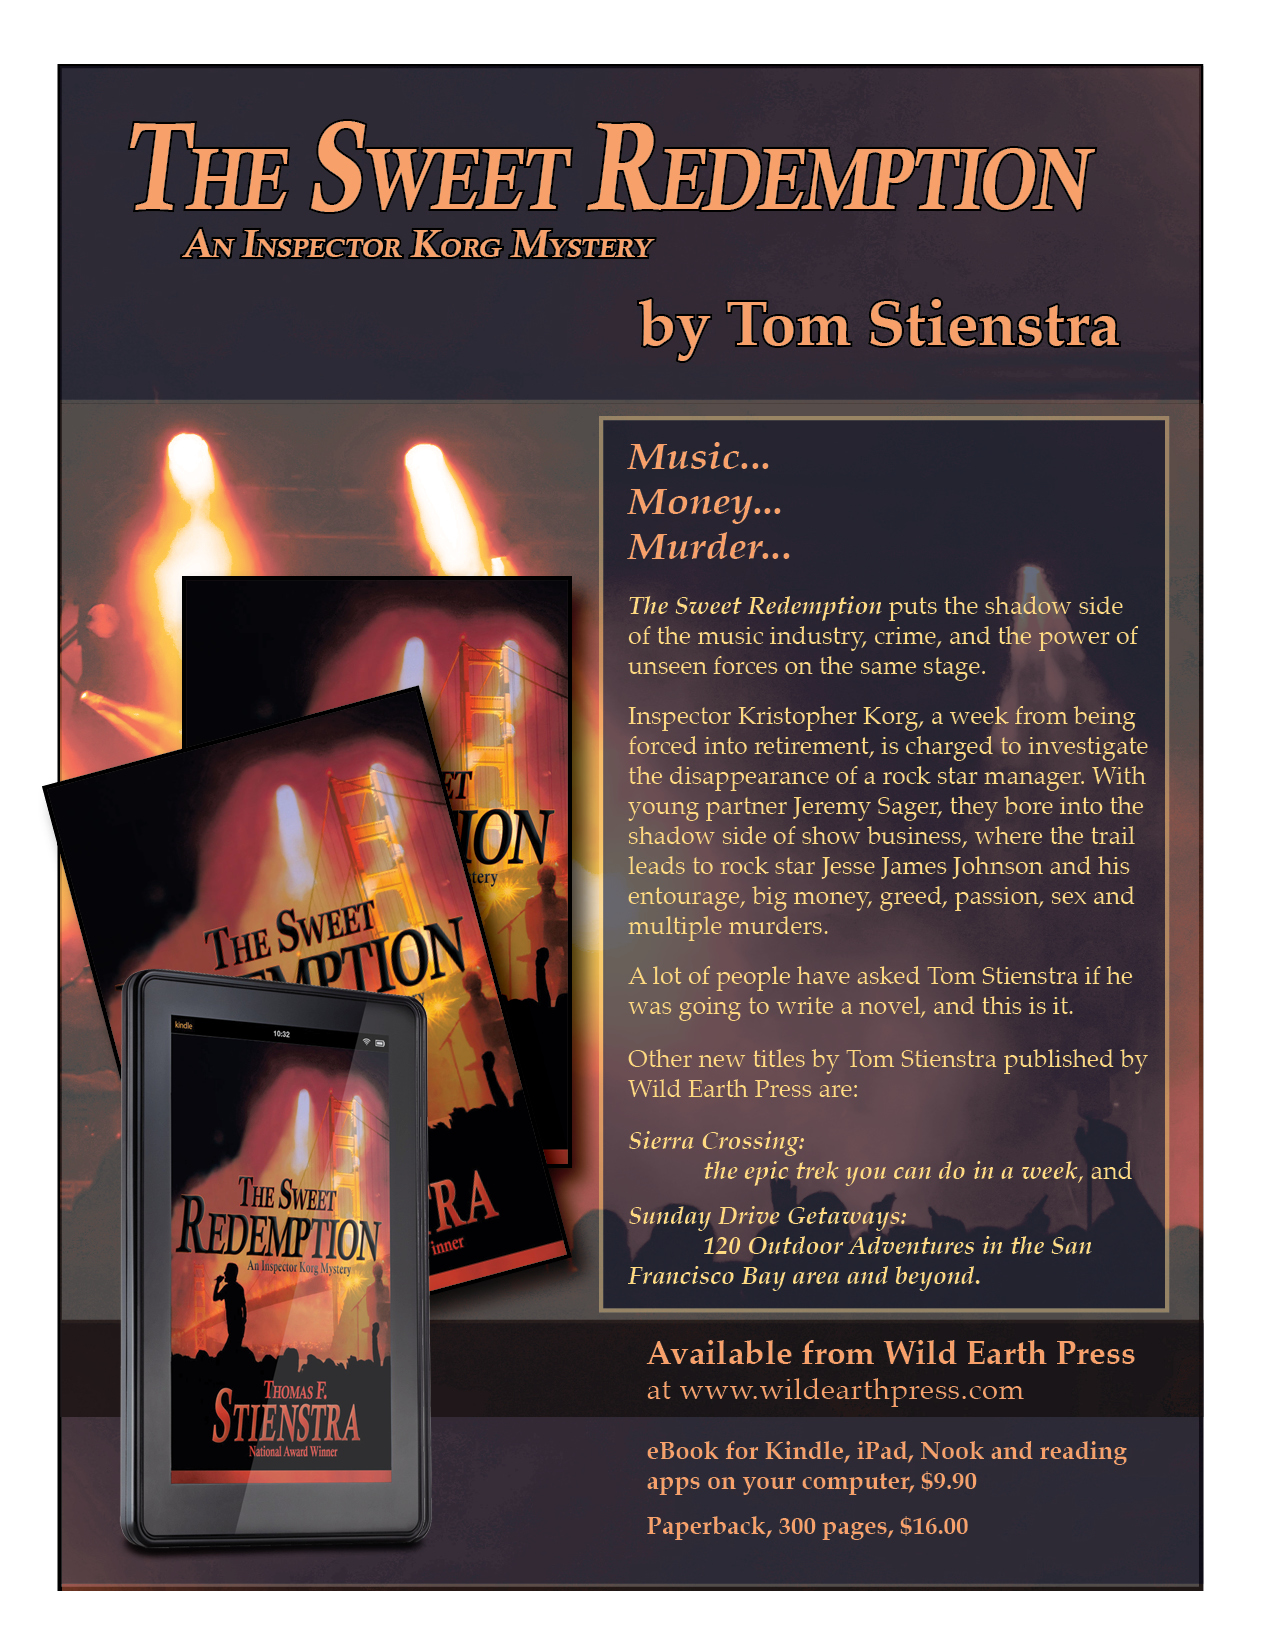 The Sweet Redemption Mystery Novel Tom Stienstra